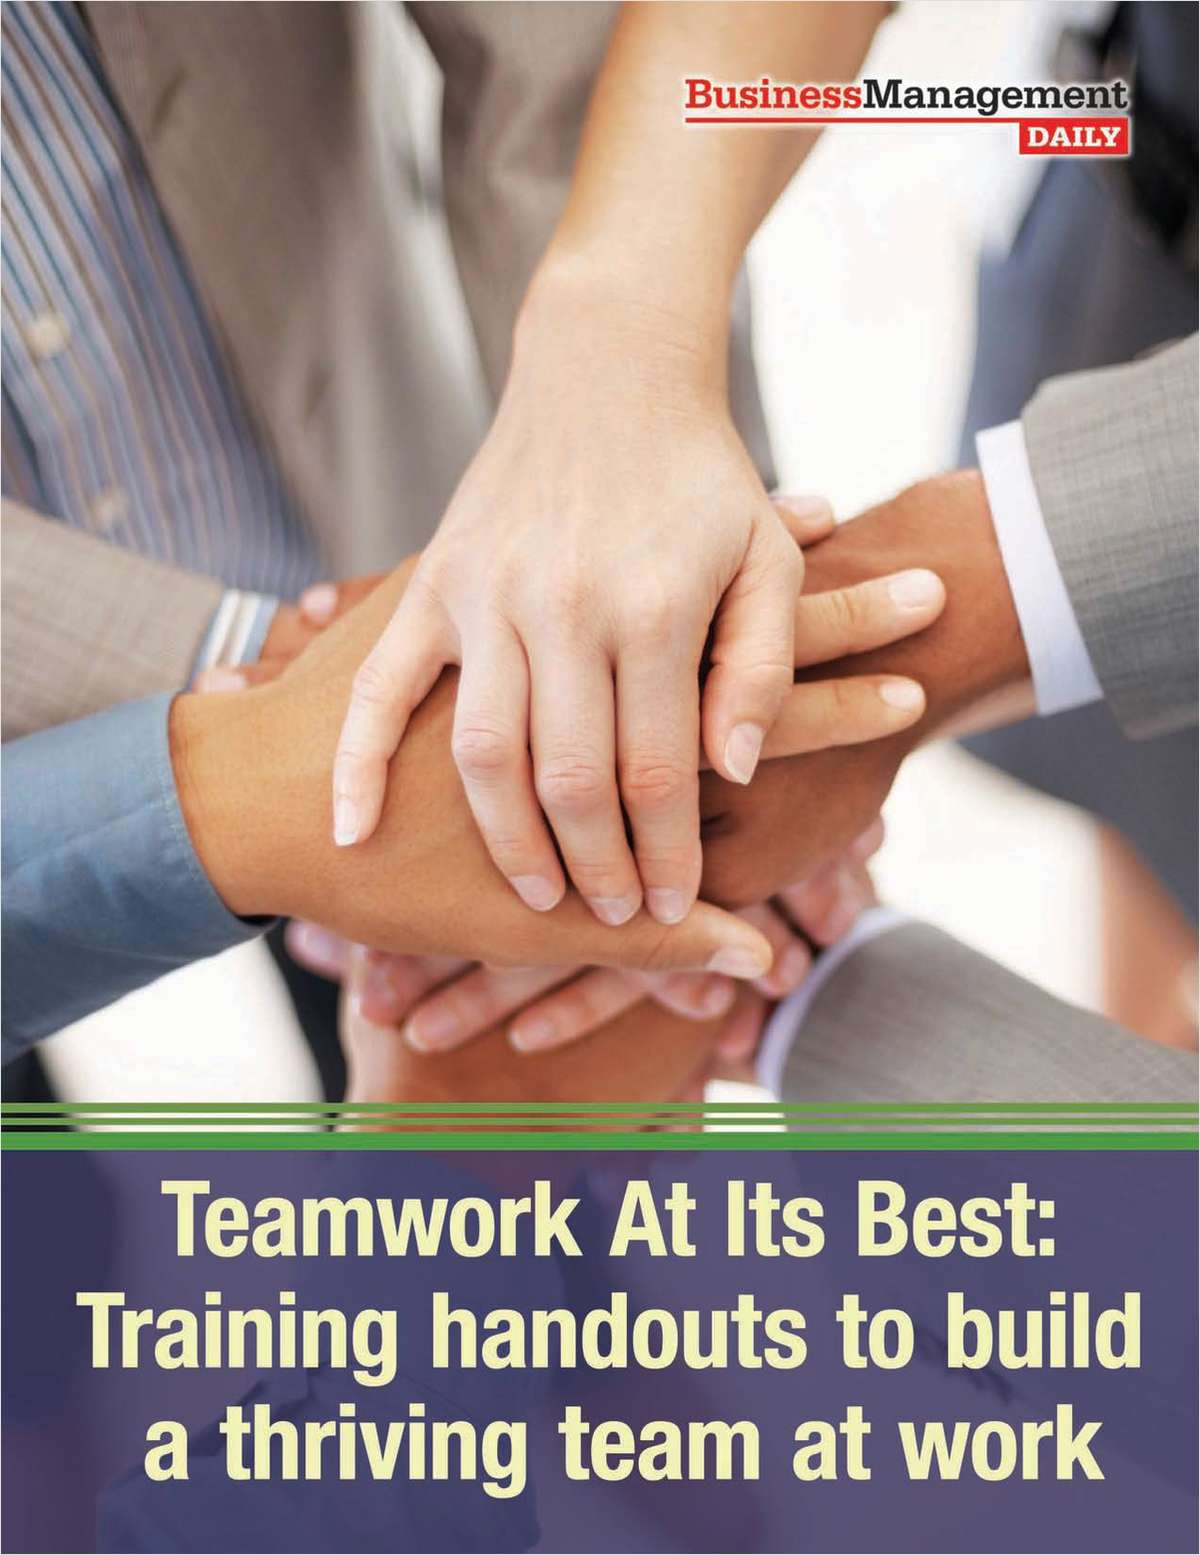 Teamwork At Its Best: Training Handouts to Build a Thriving Team at Work